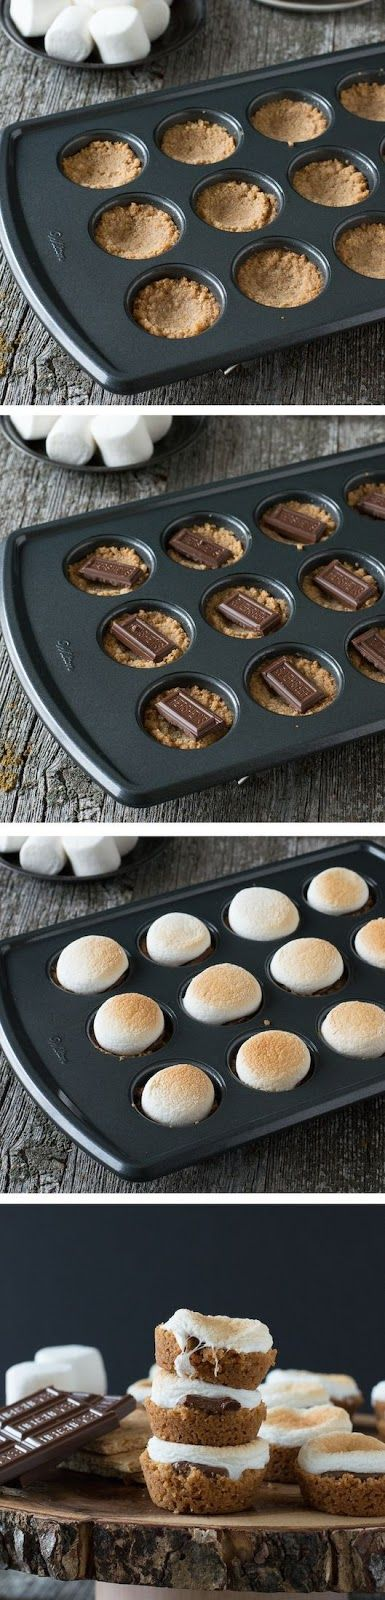 S'mores Bites by the firstyearblogf via cocoinandoconalena: http://thefirstyearblog.com/smores-bites/ #Smores